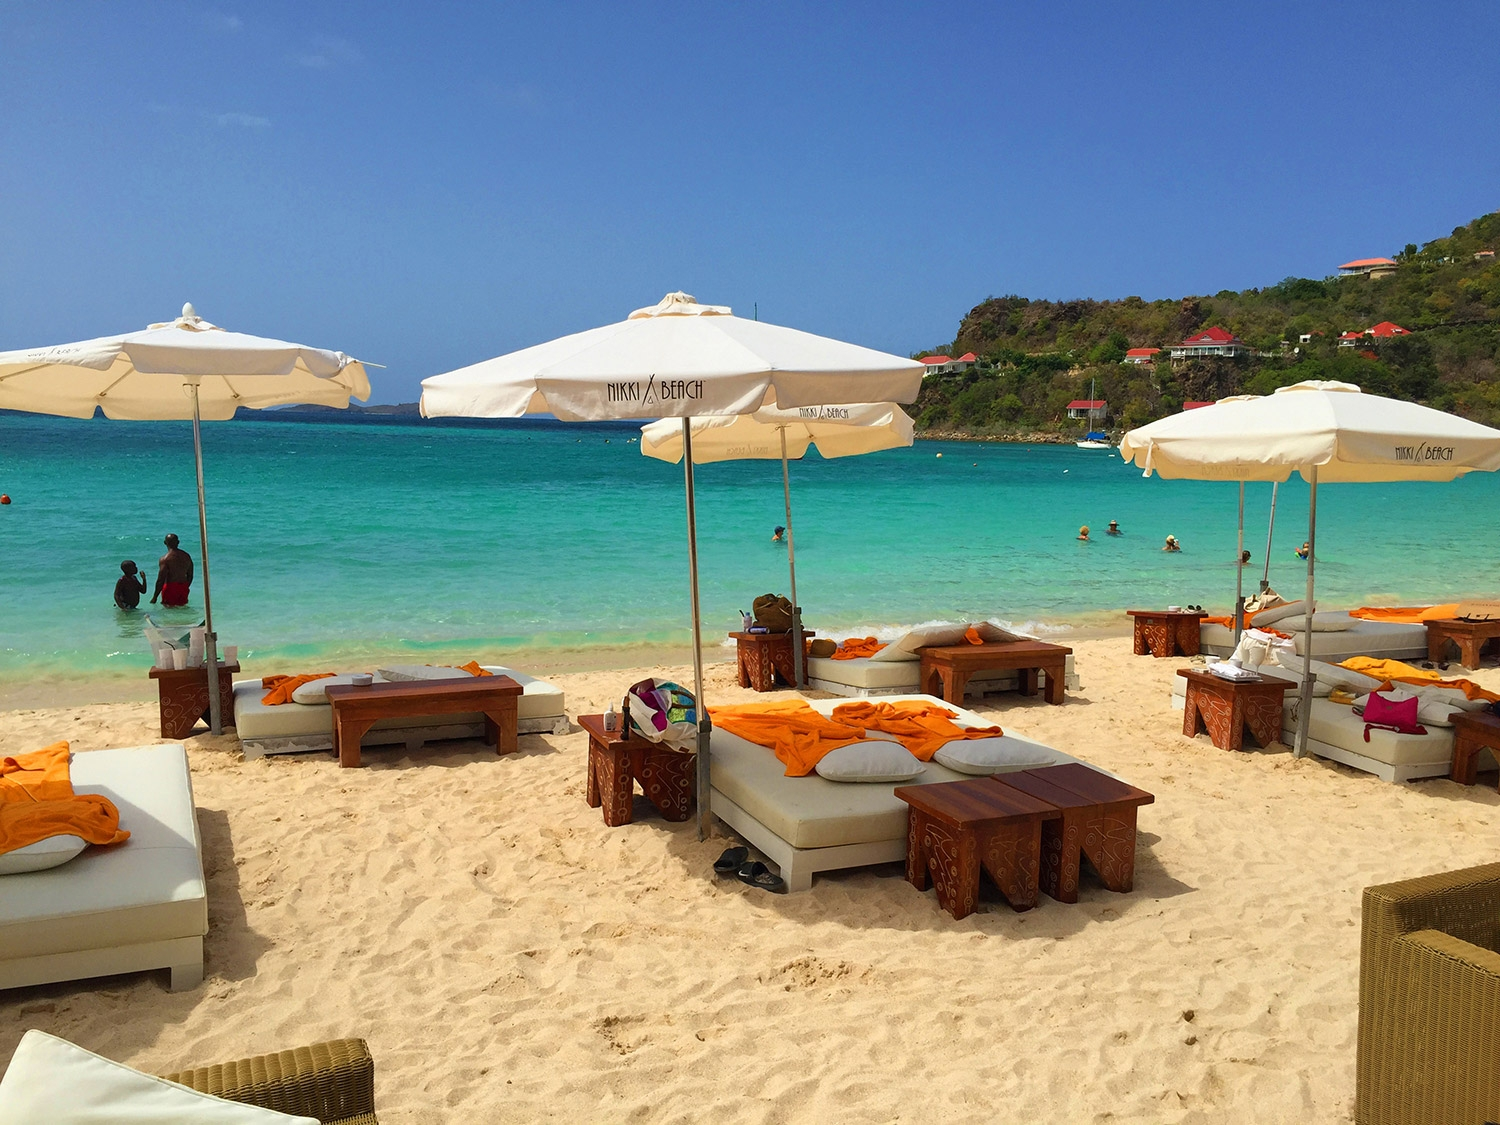 White day beds face the turquoise water on Nikki Beach